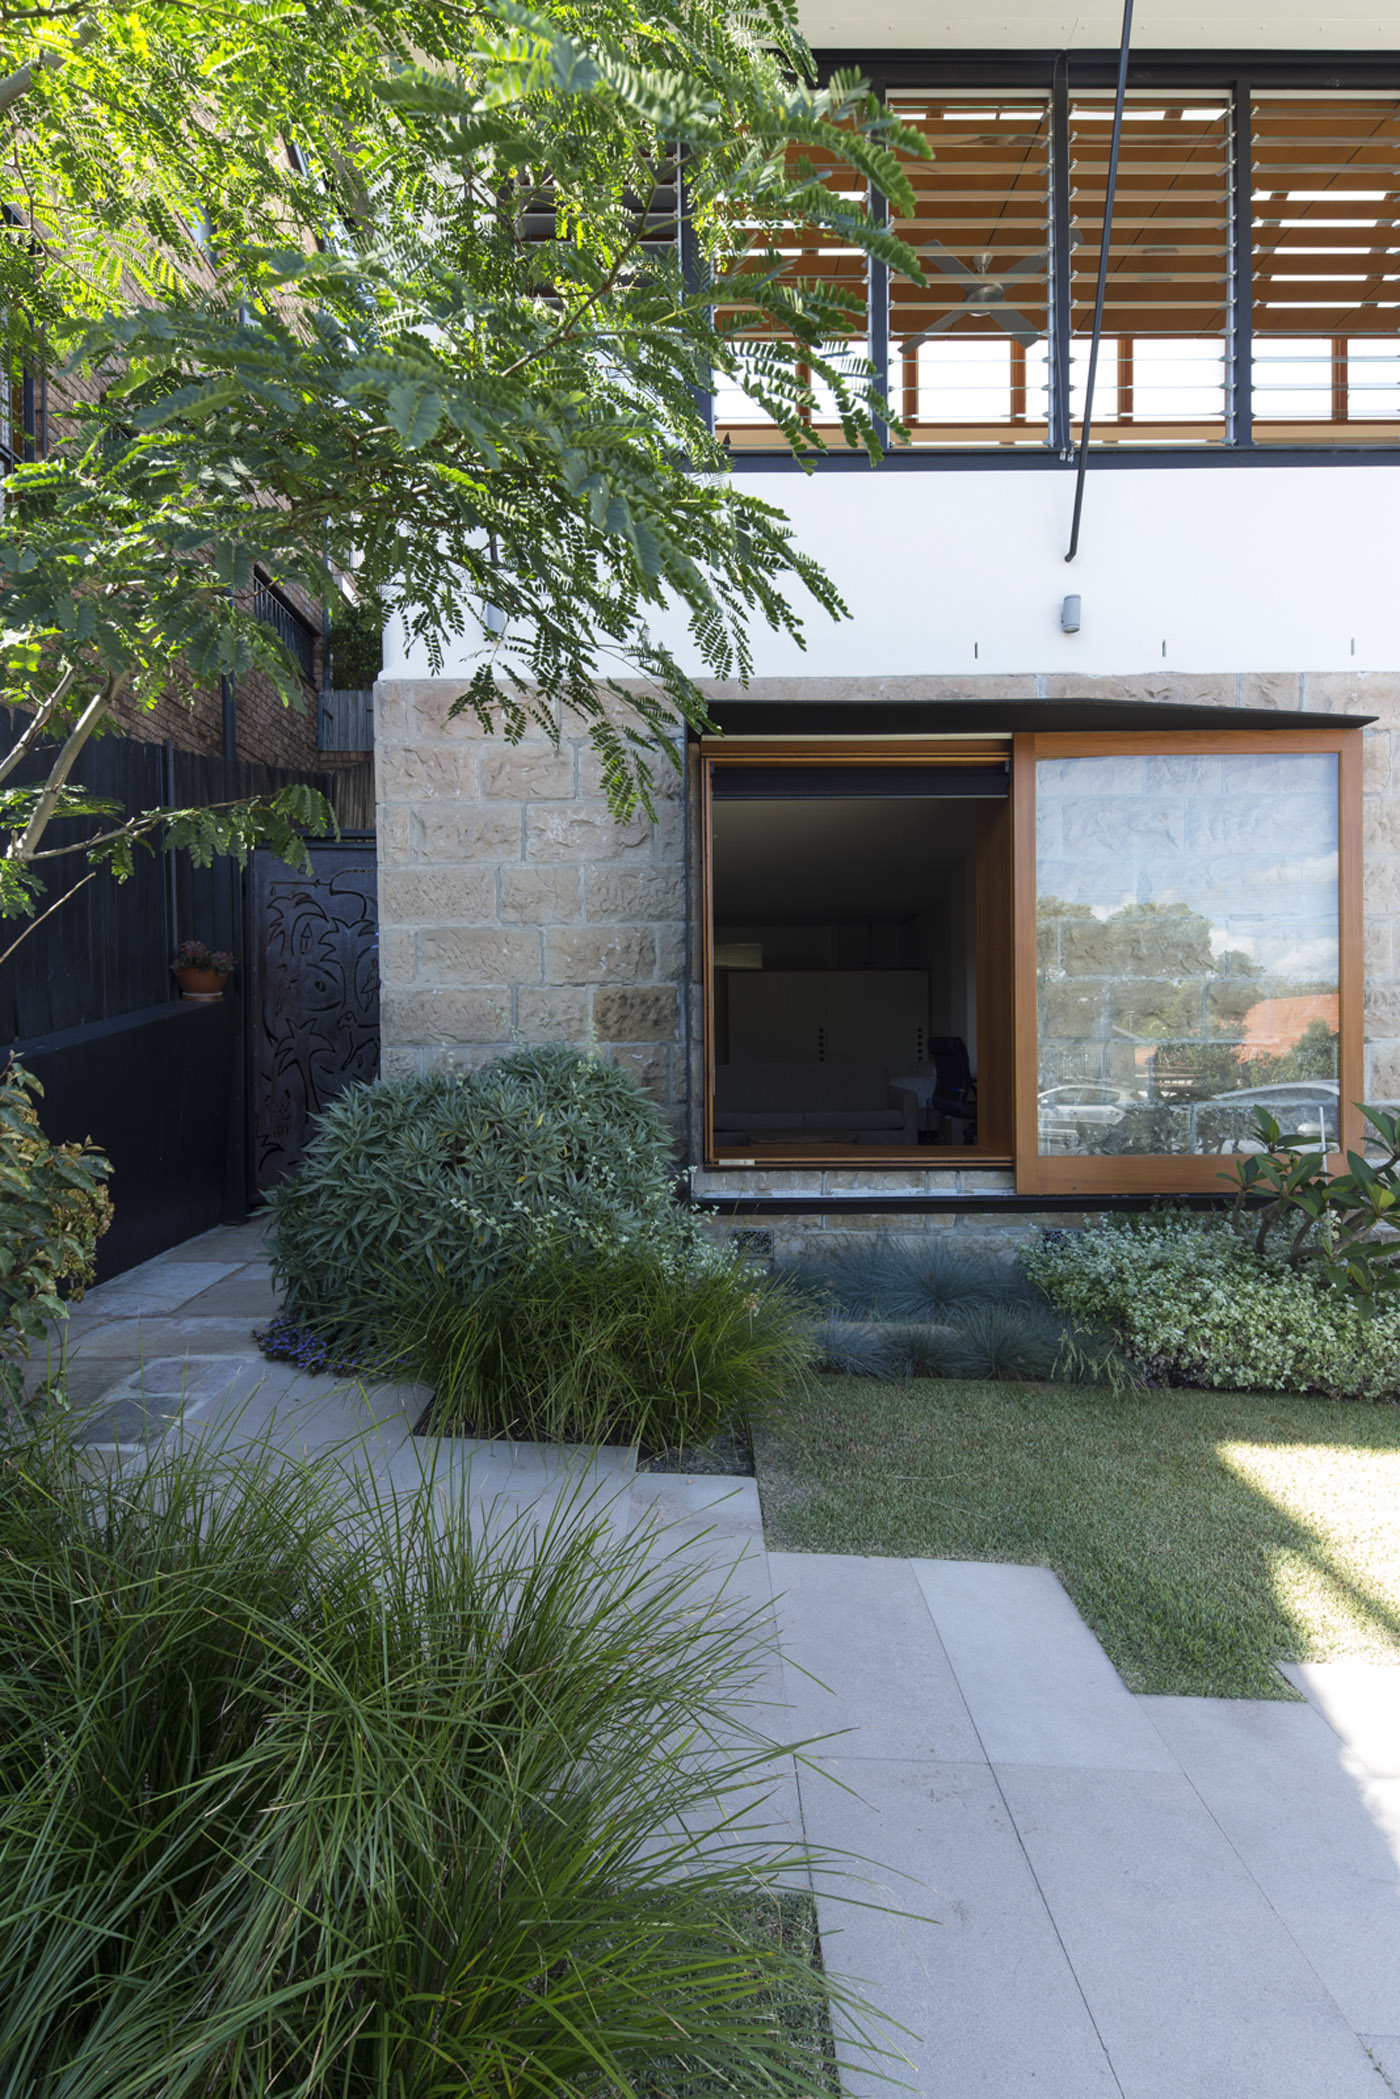 Salgo Kitching House by Sydney award winning architecture office Sam Crawford Architects. View to house from backyard.